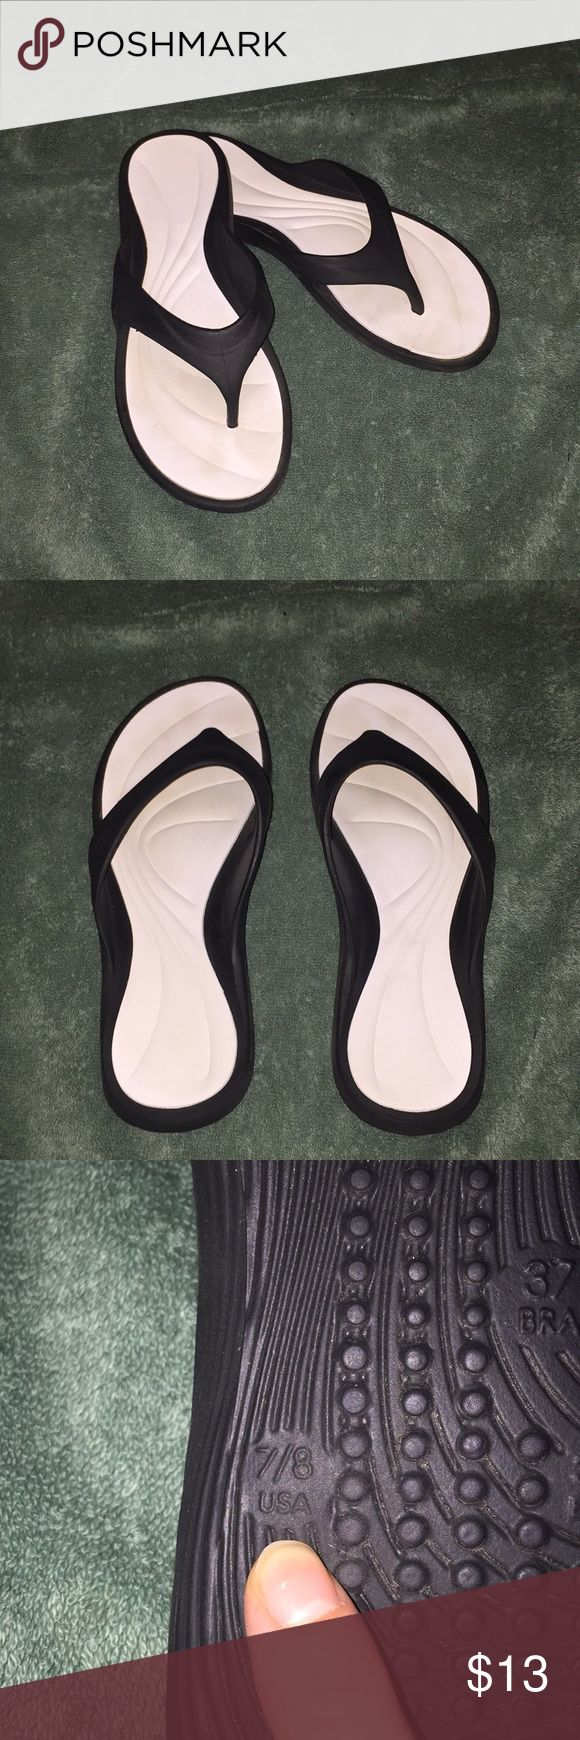 Black and white flip flops Worn maybe once Made in Brazil grendene Shoes Sandals